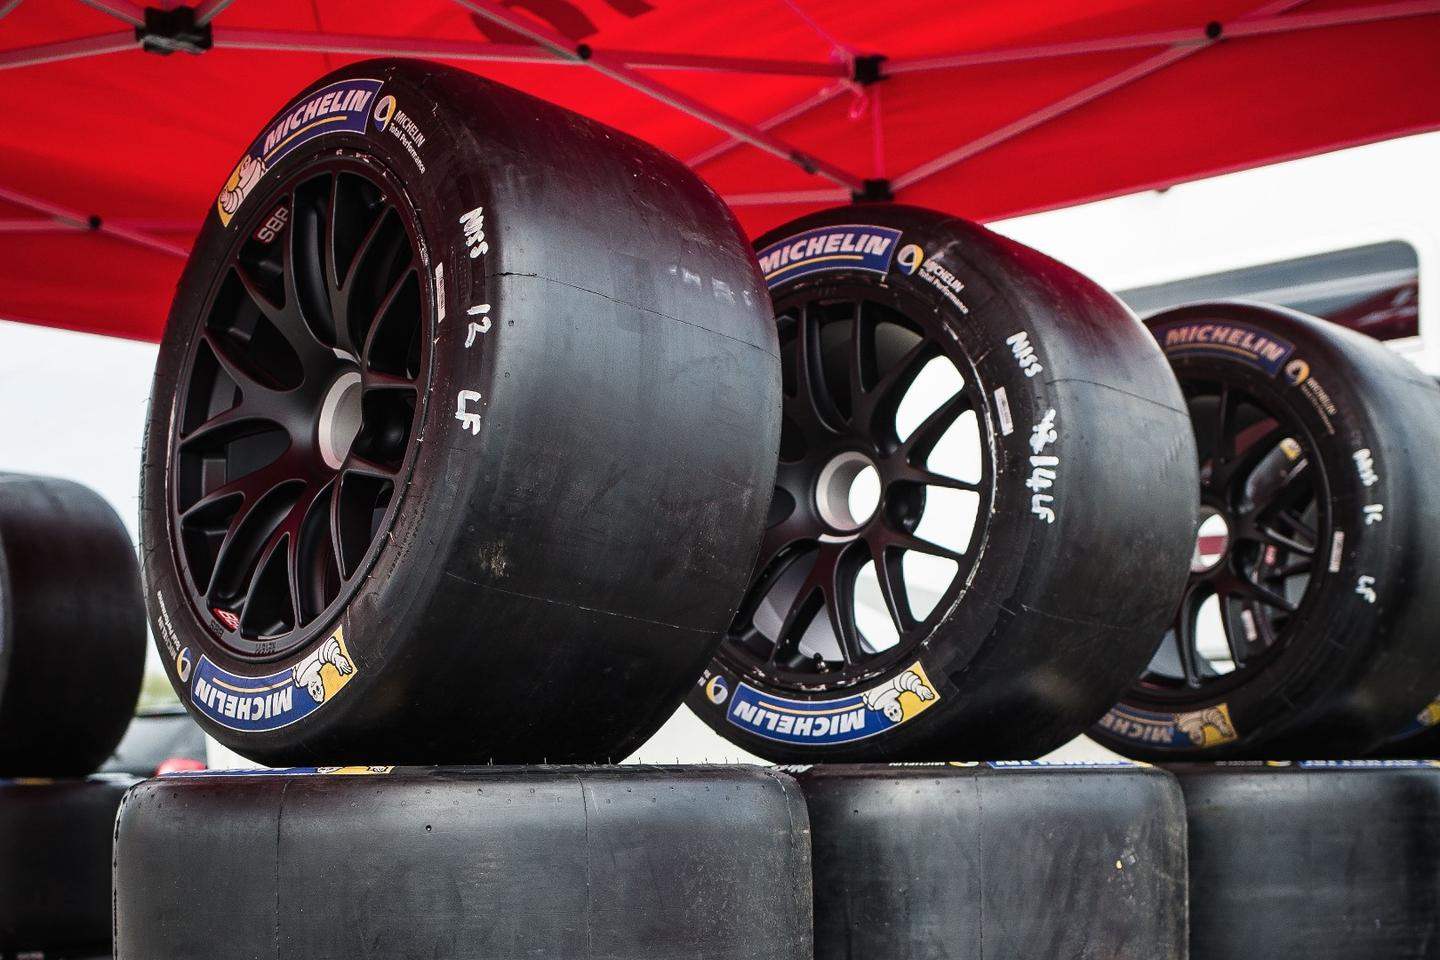 The GT-R LM Nismo's front tires are wider than the rears